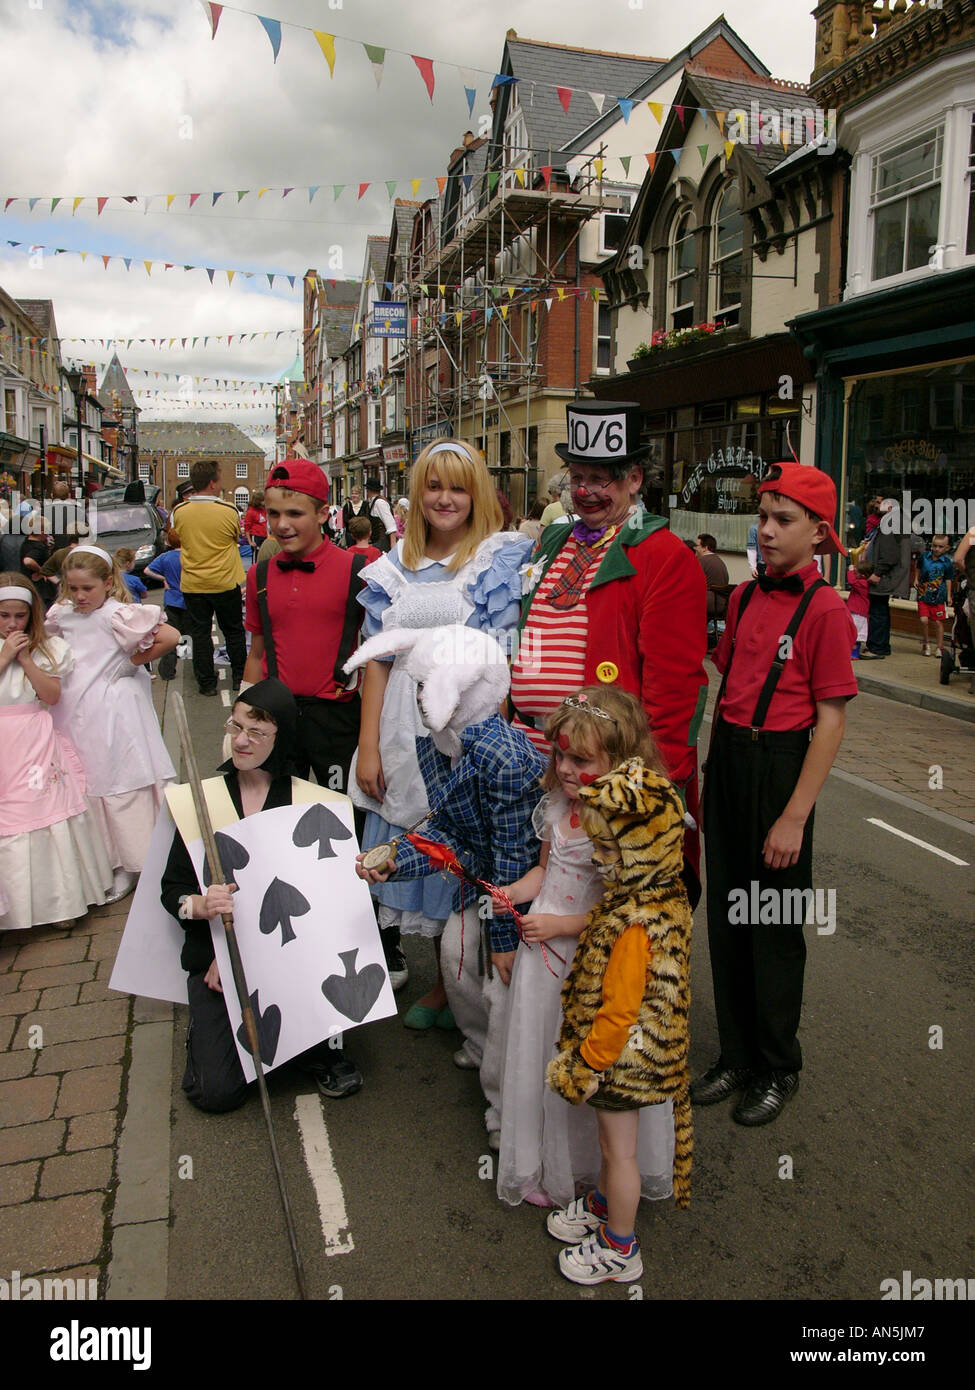 alice in wonderland characters awaiting judging at the end of the parade at Llandrindod Wells victorian festival Powys Wales UK - Stock Image